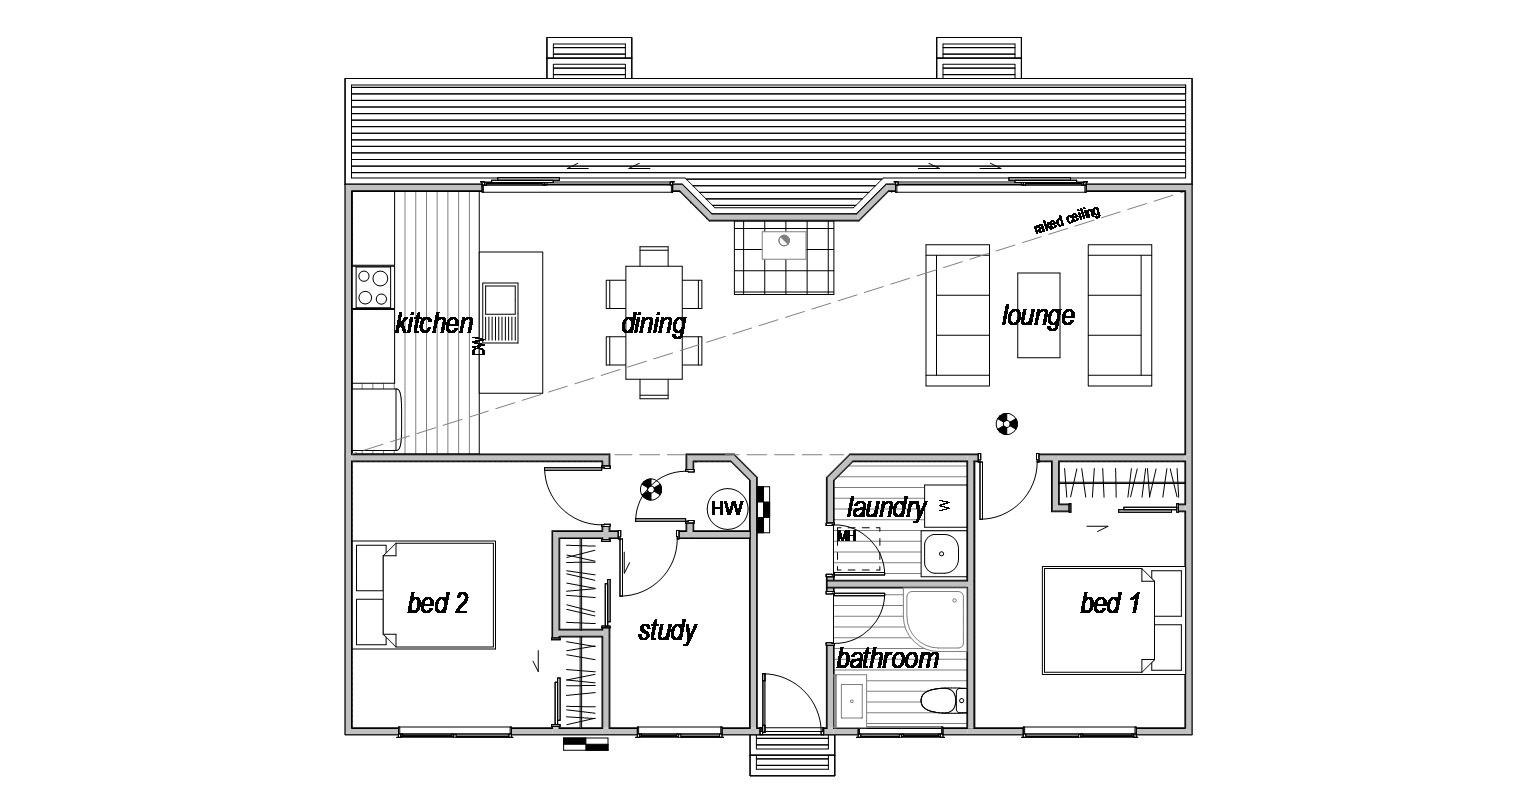 Compact 2 bedroom floorplan